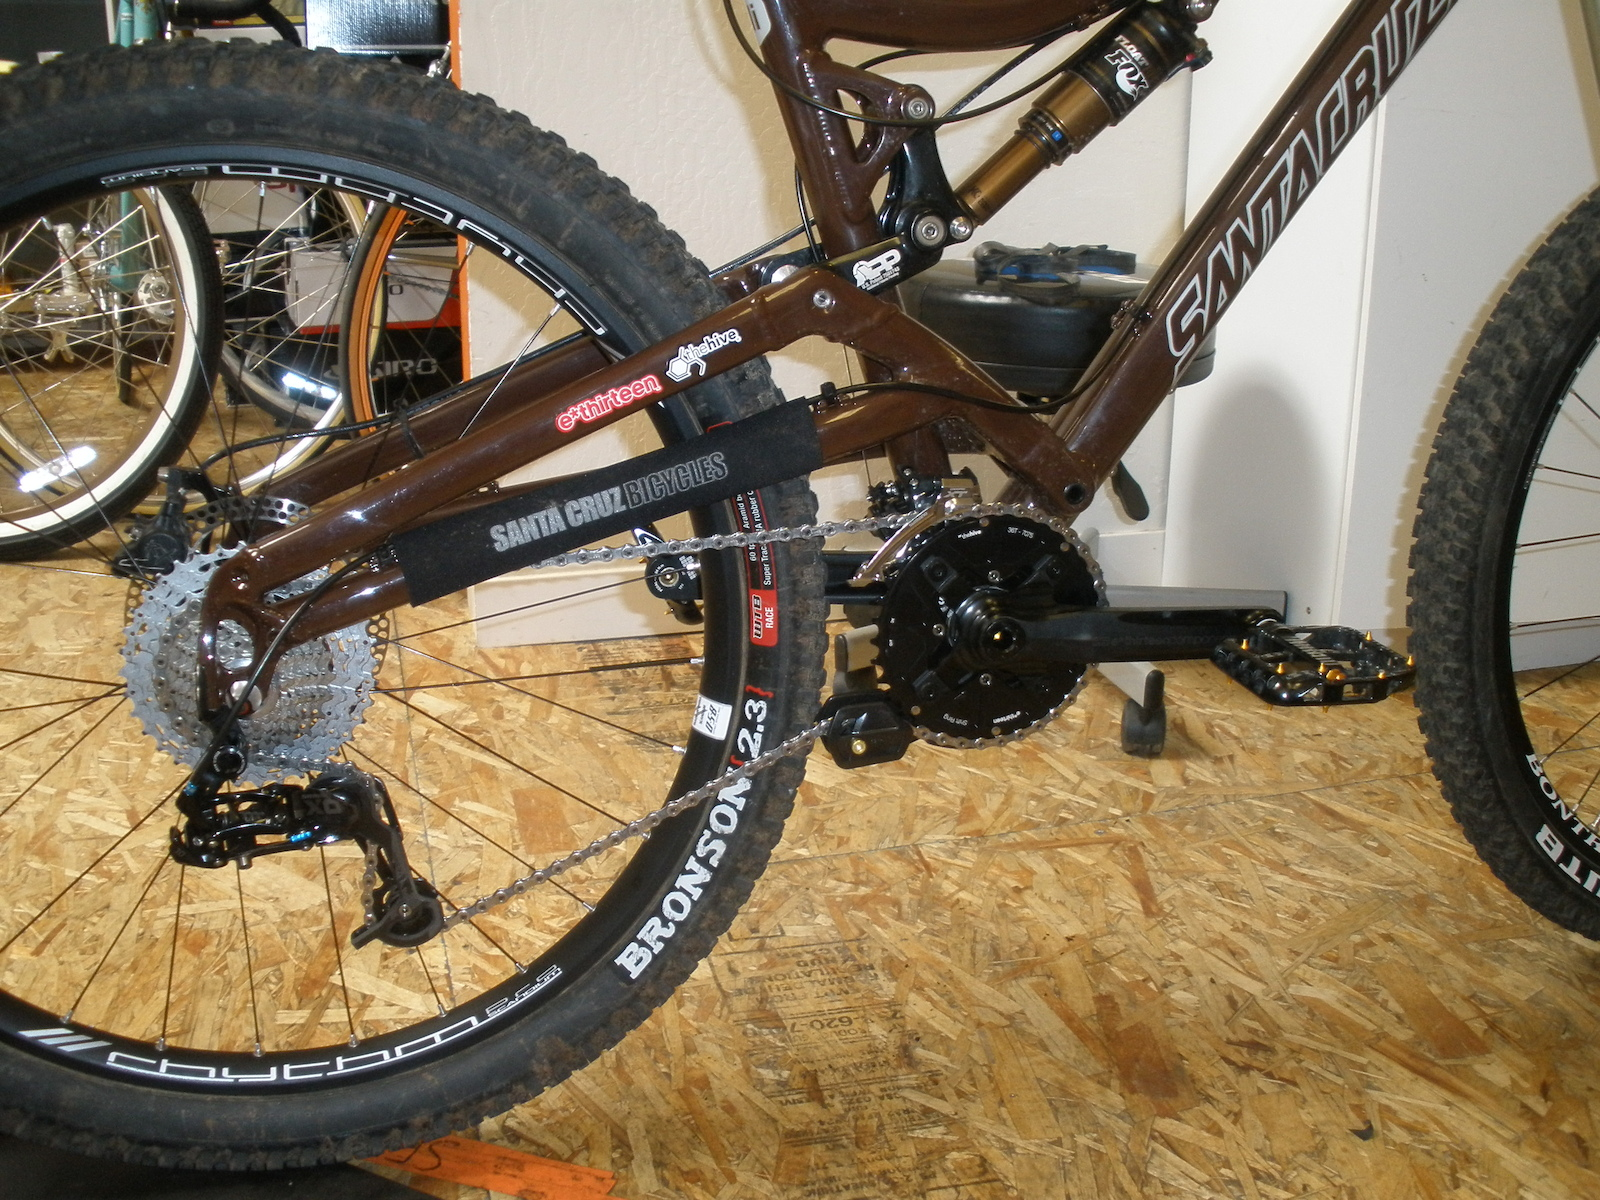 New drivetrain on the Nickel. X.0 10-speed medium cage derailleur, XT 2x front derailleur, E.13 22x36 Shiftrings, E.13 TRS+ Dual guide.